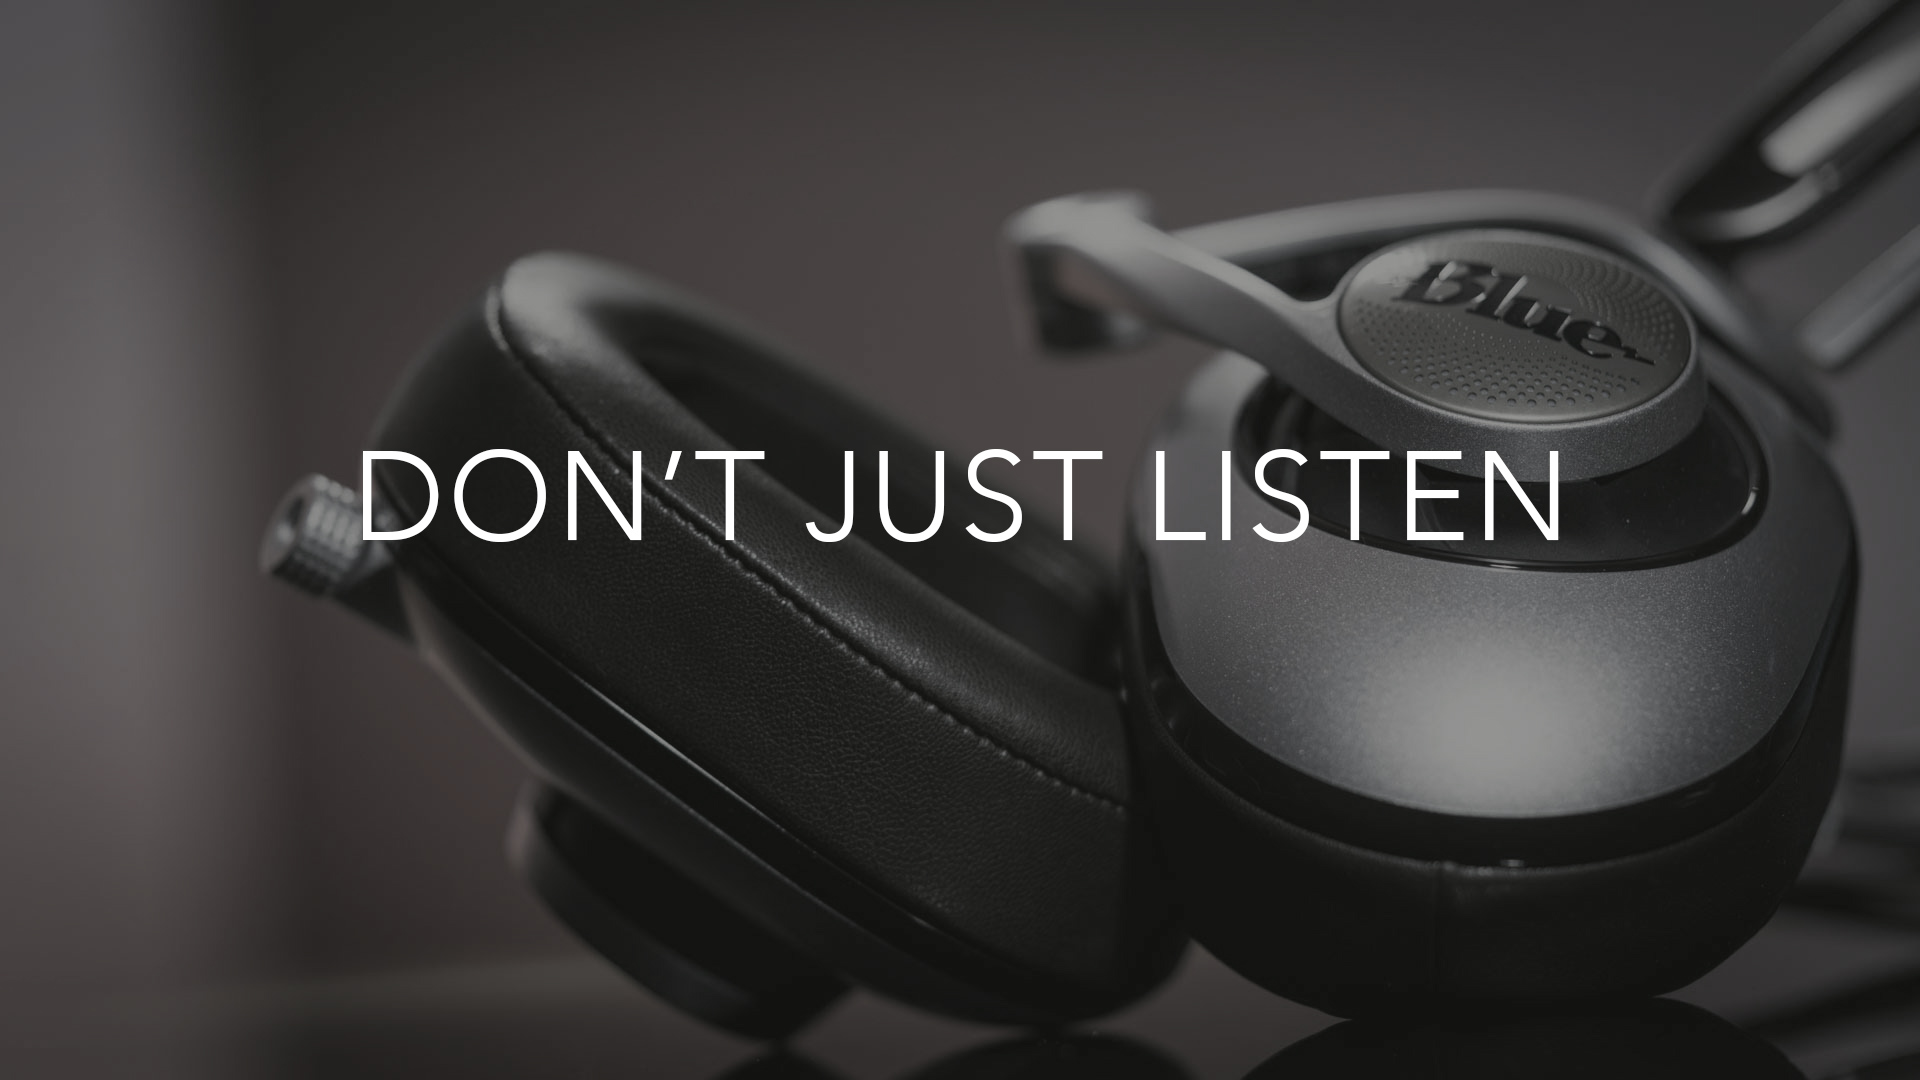 chaussures de séparation 68e08 6f75f 247 - Don't Just Listen - Apologia Radio - Christian Podcast ...